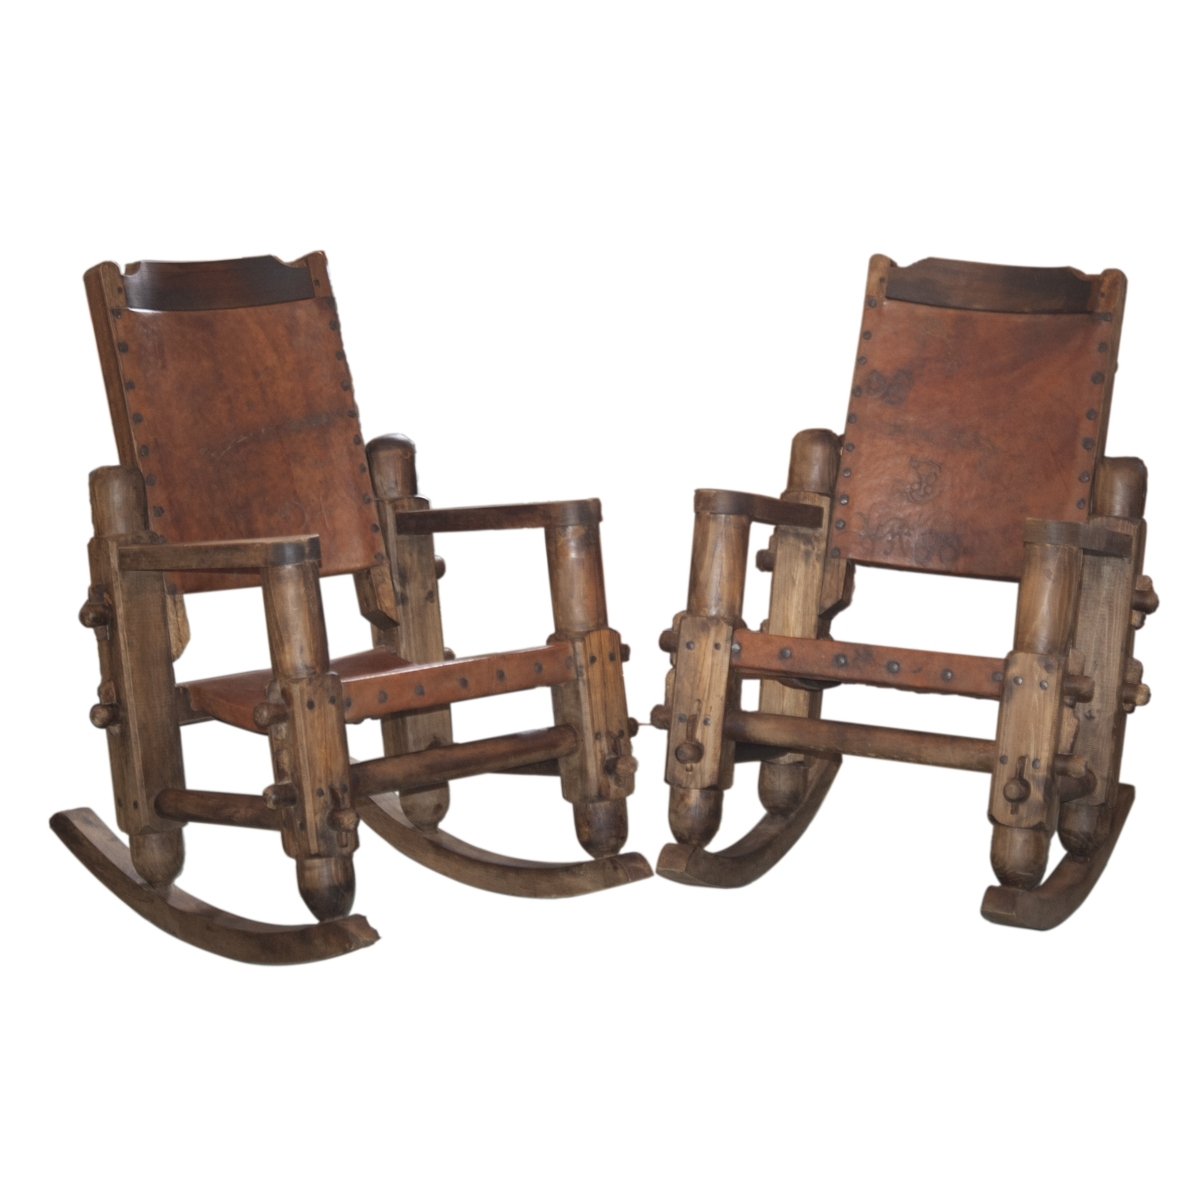 Famous Vintage Outdoor Rocking Chairs Intended For Lot #260: Vintage Mexican Wooden & Leather Rocking Chairs (View 11 of 20)